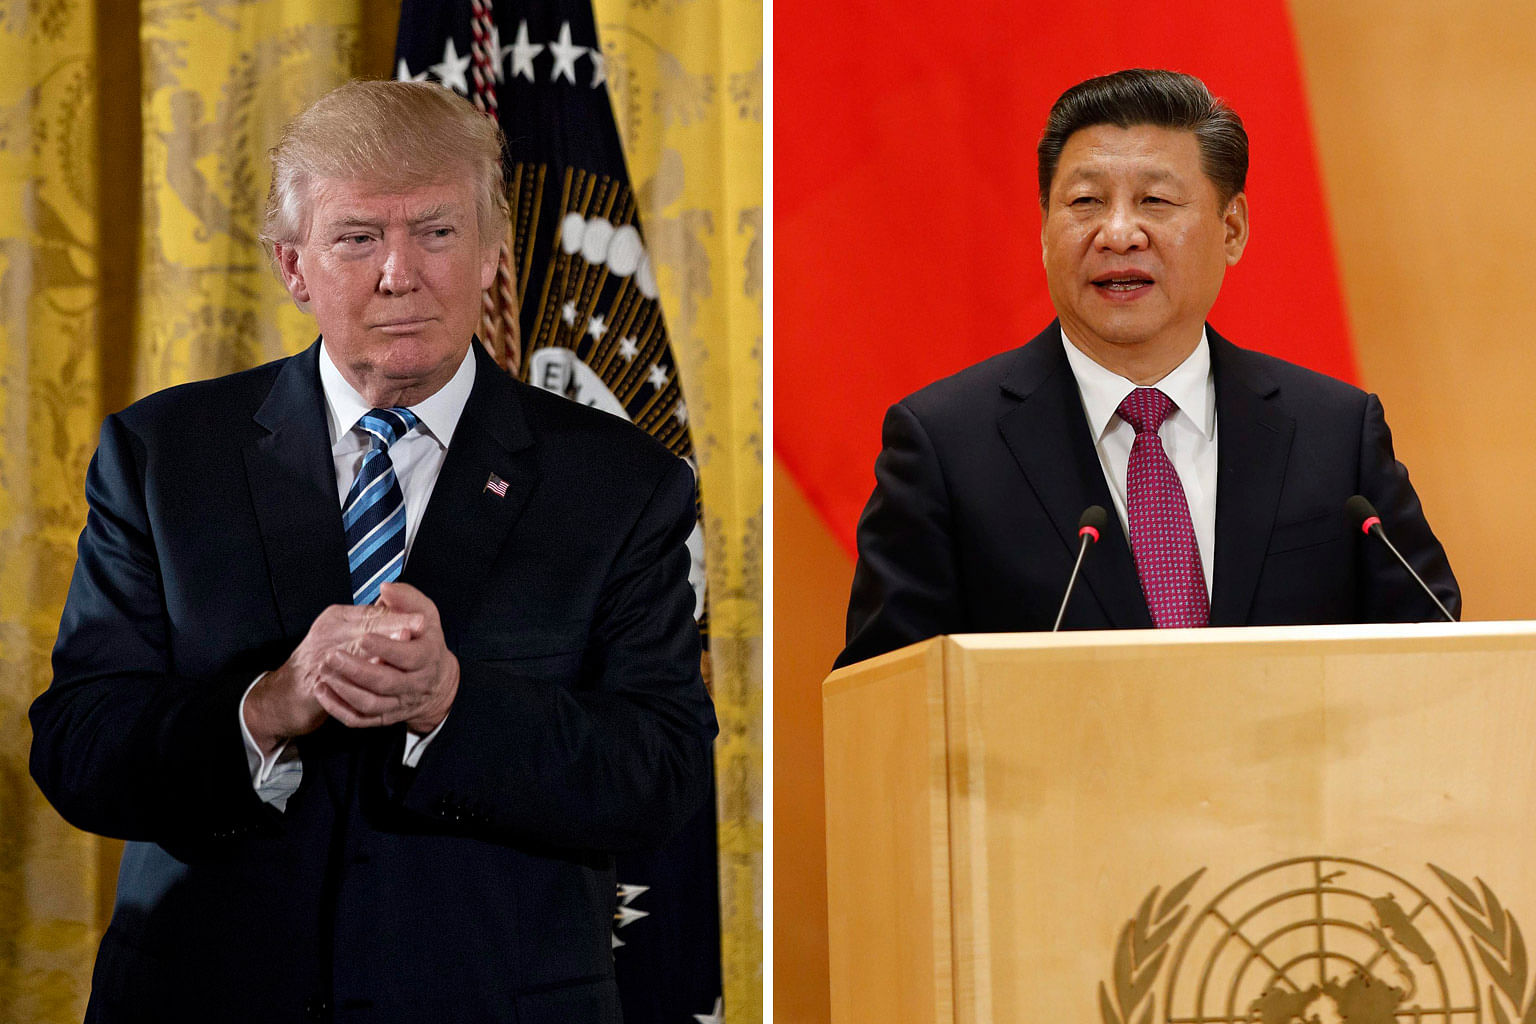 Mr Donald Trump's America First is not a surprise but the contrast between his stand and Mr Xi Jinping's economic globalisation, which the latter repeated 24 times in his Davos speech, is stark and bittersweet to Western elites. Still, questions rema